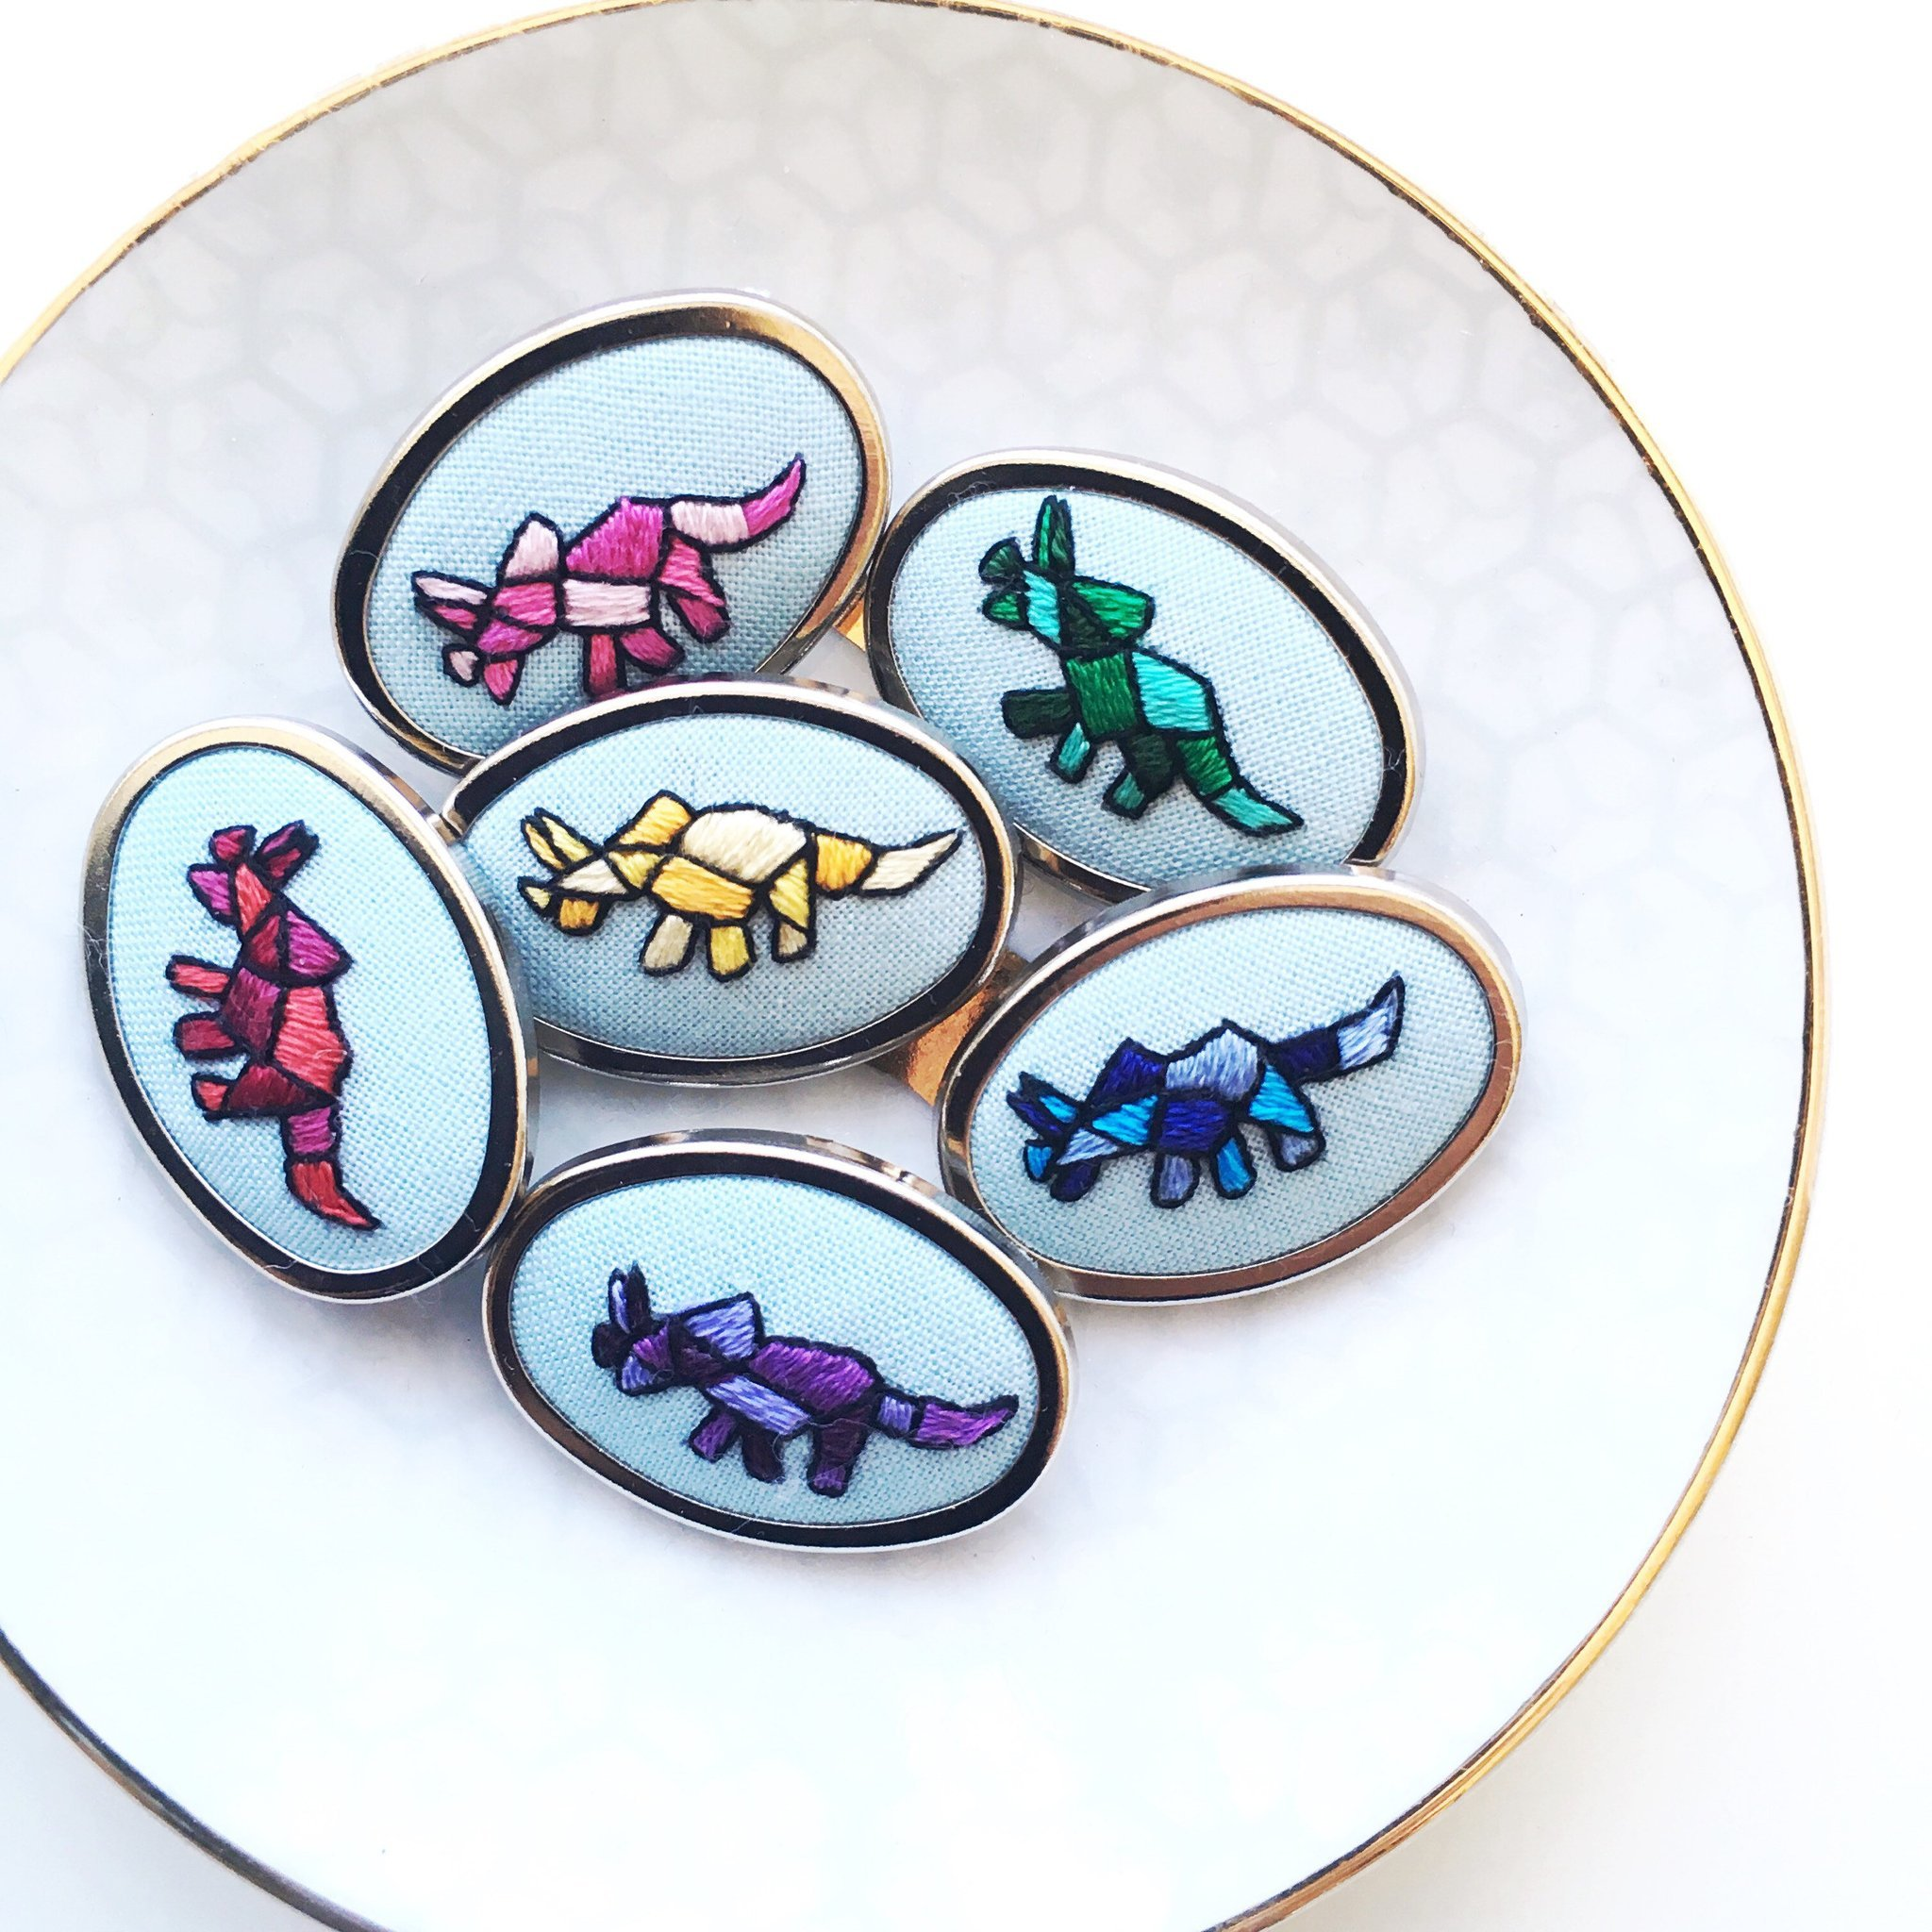 Embroidered Triceratops brooches by Tash Hatcher